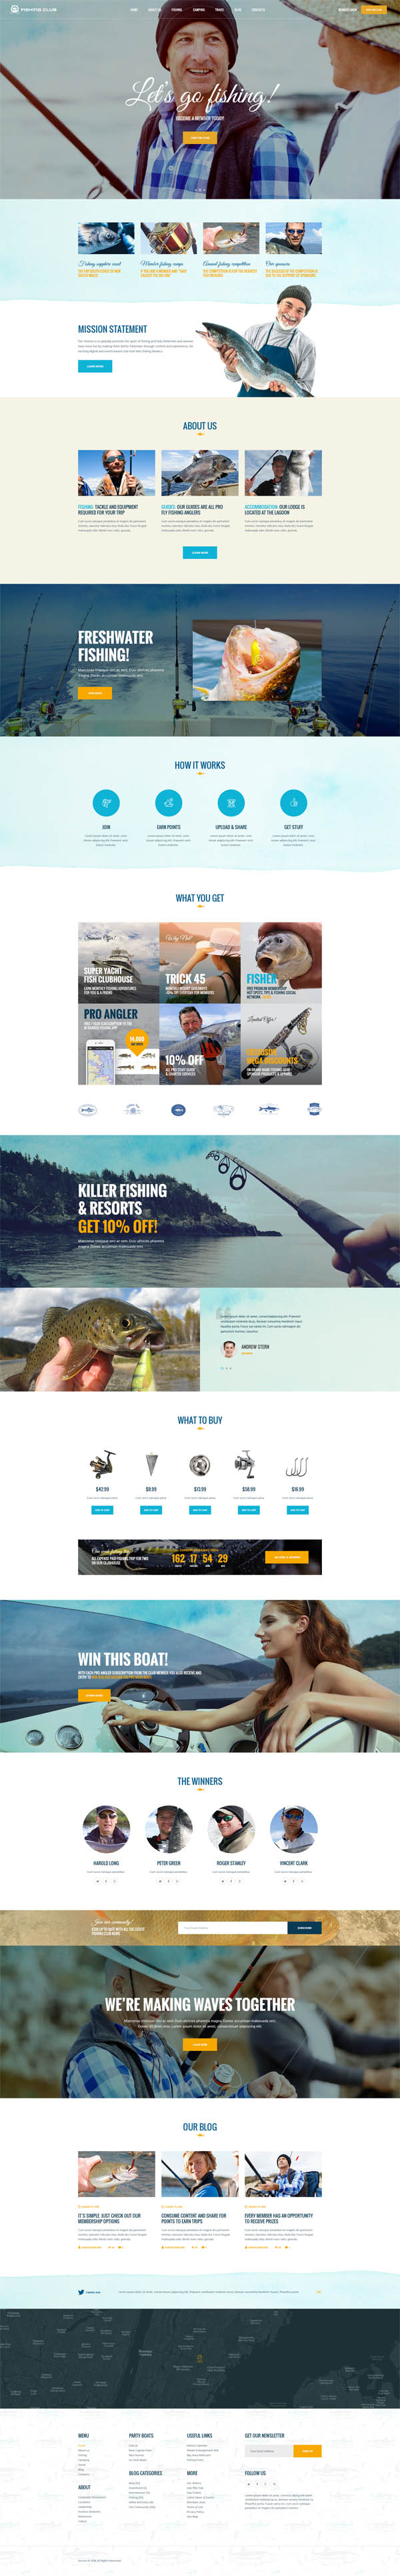 Fishing Club – Fishing | Camping | Travel Club WordPress Theme